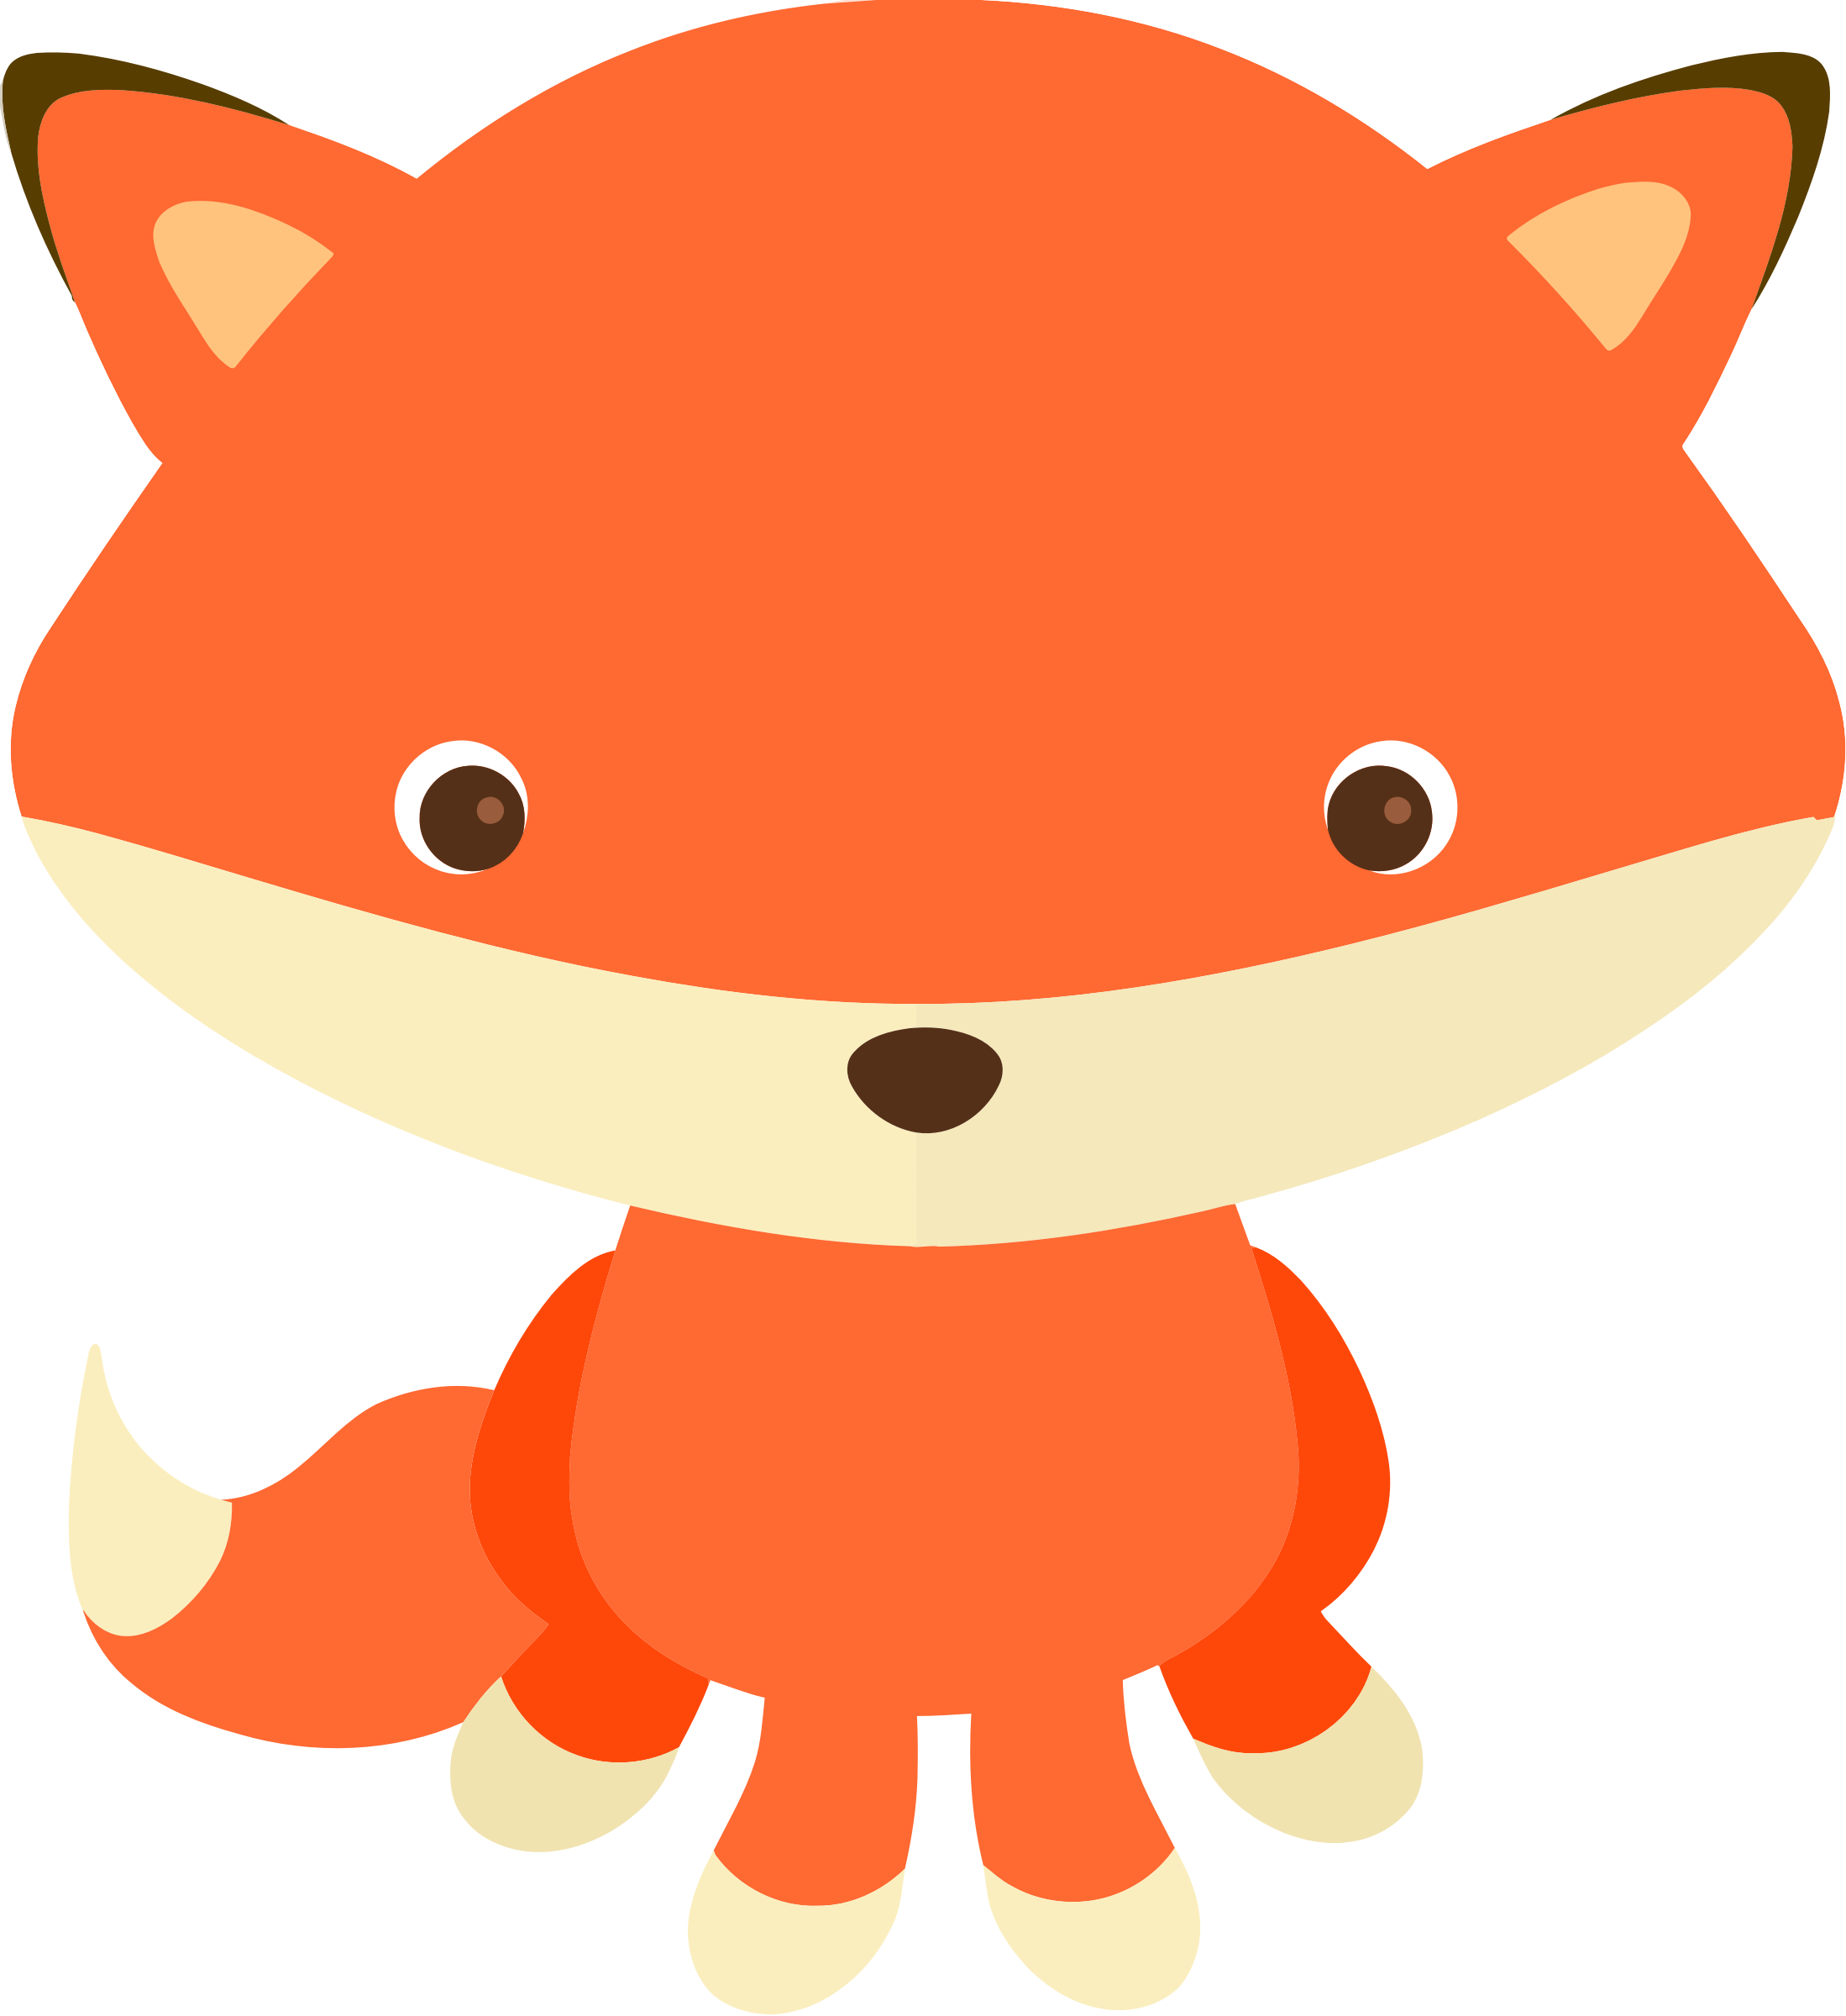 2198x2400 Fox By @kbj 77, I Cute Little Fox I Made For A Clipart Set Of Mine